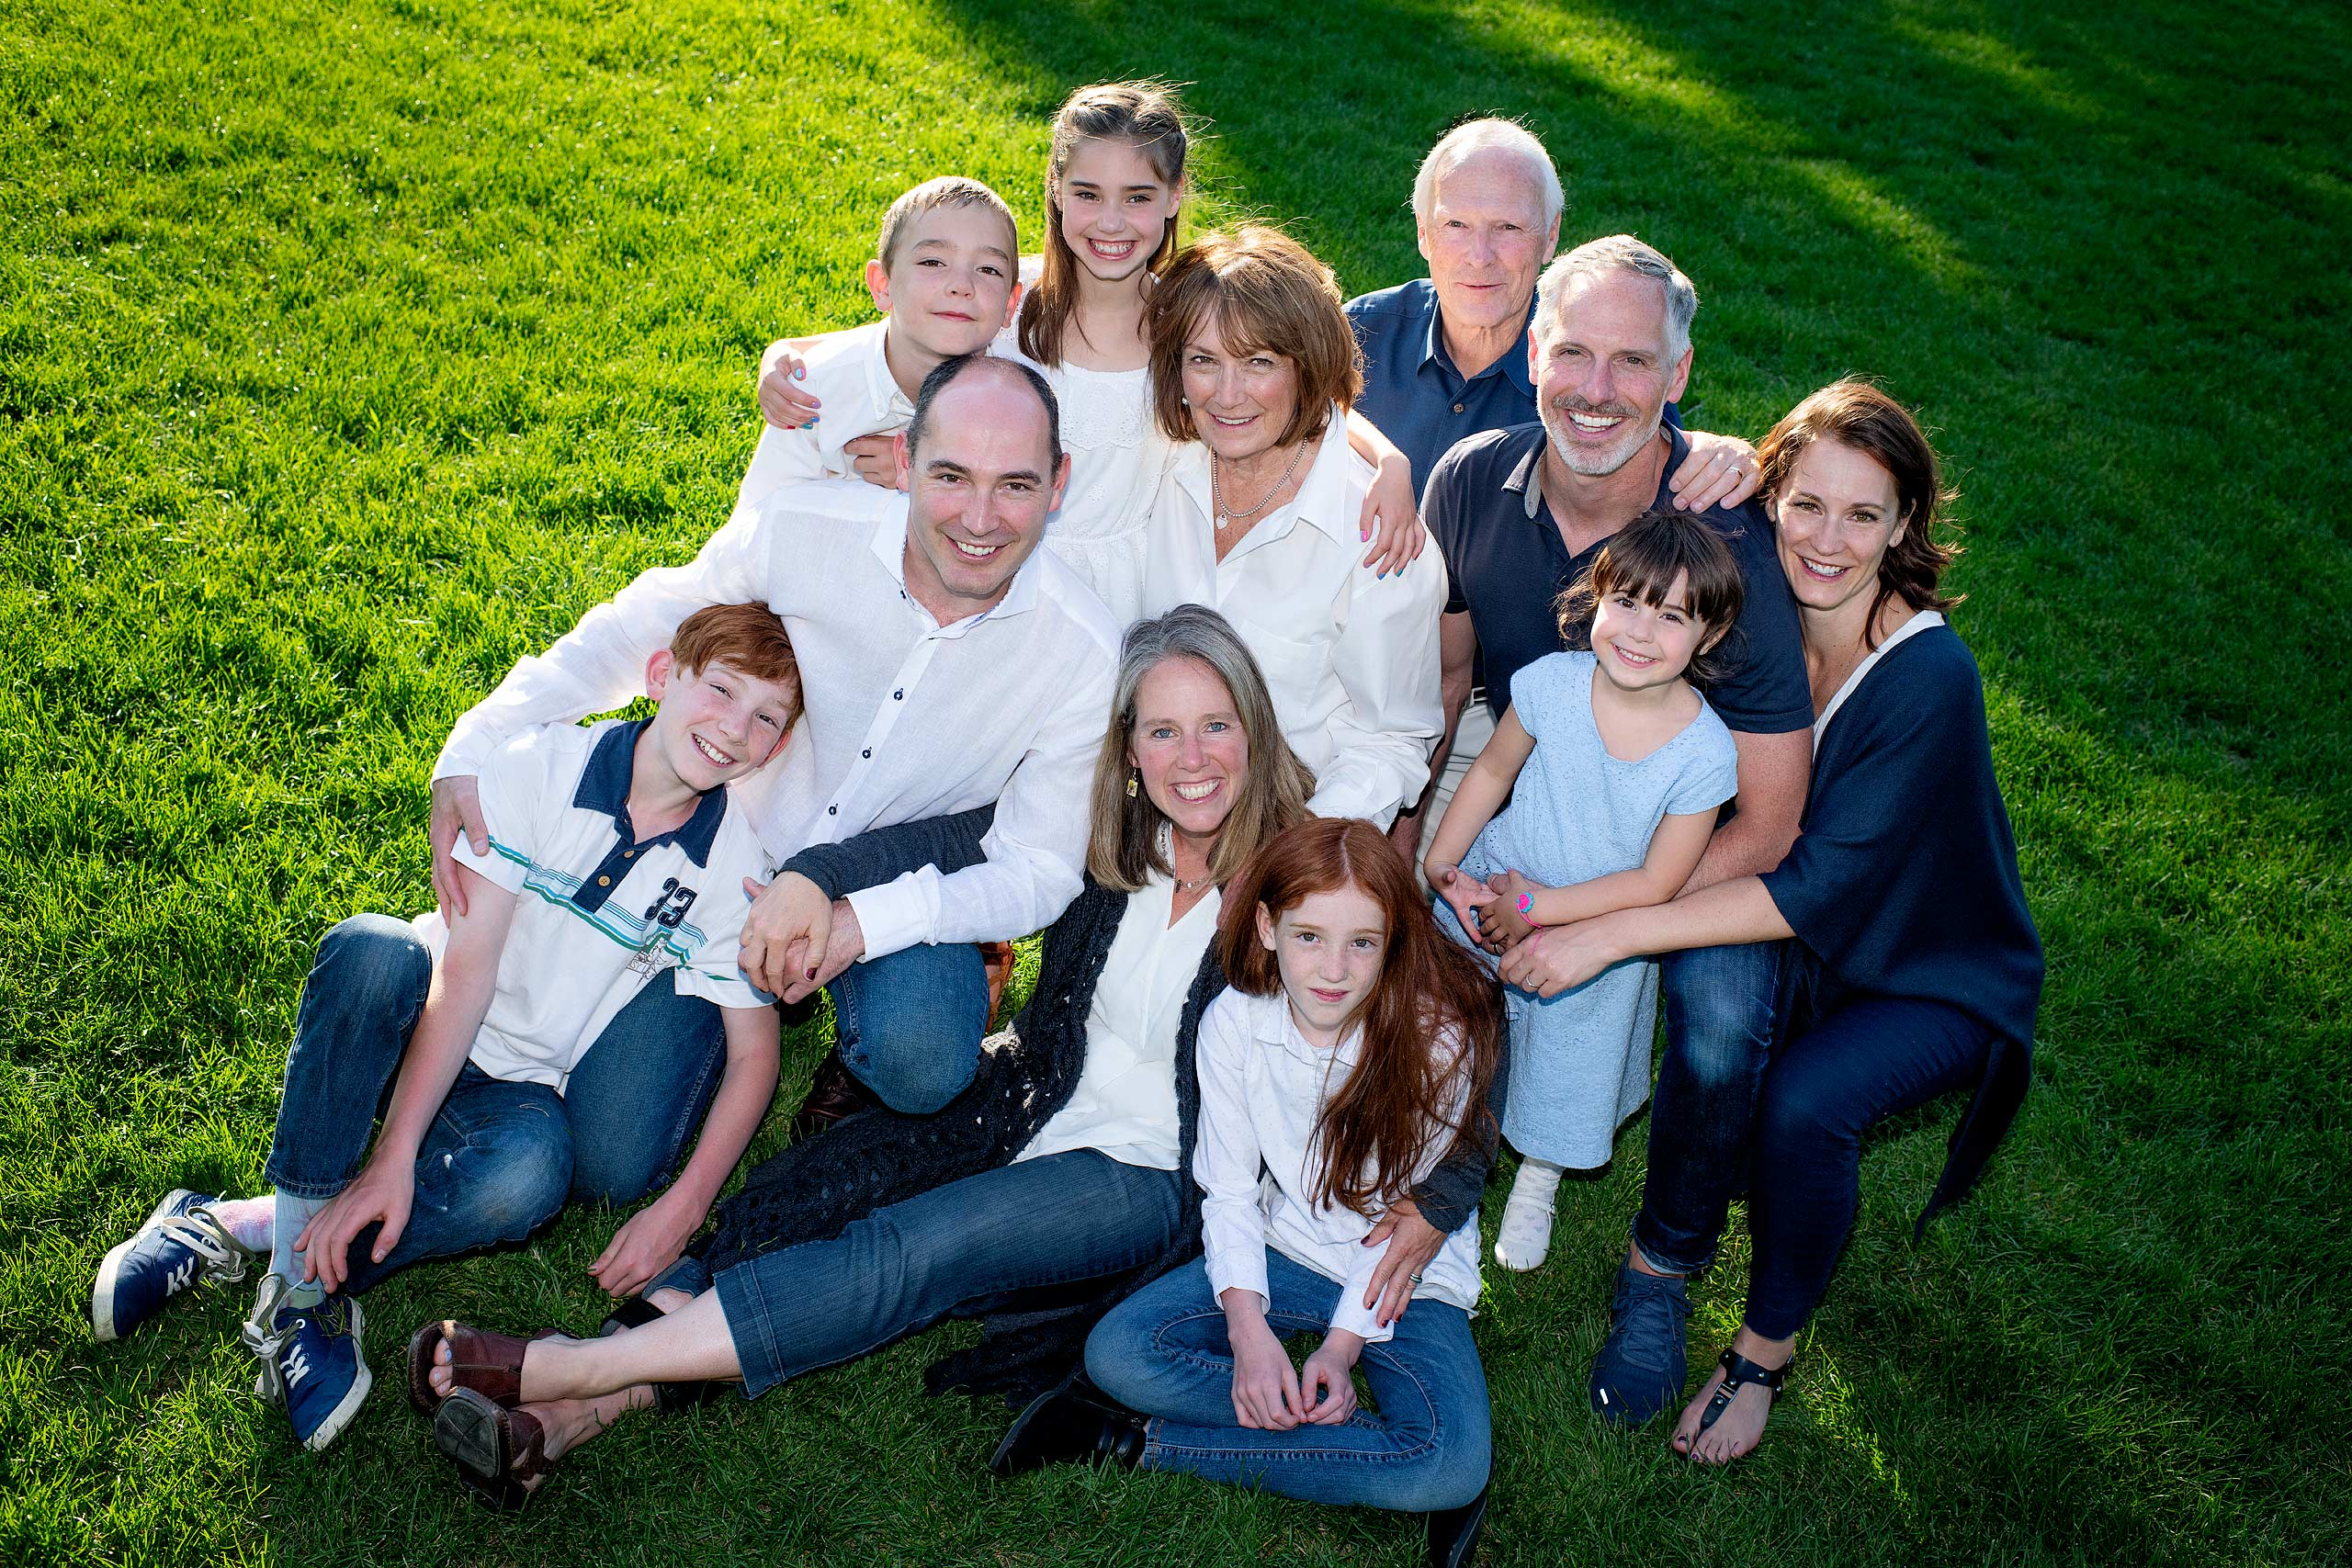 large family posing on the grass taken by family photographer sean leblanc